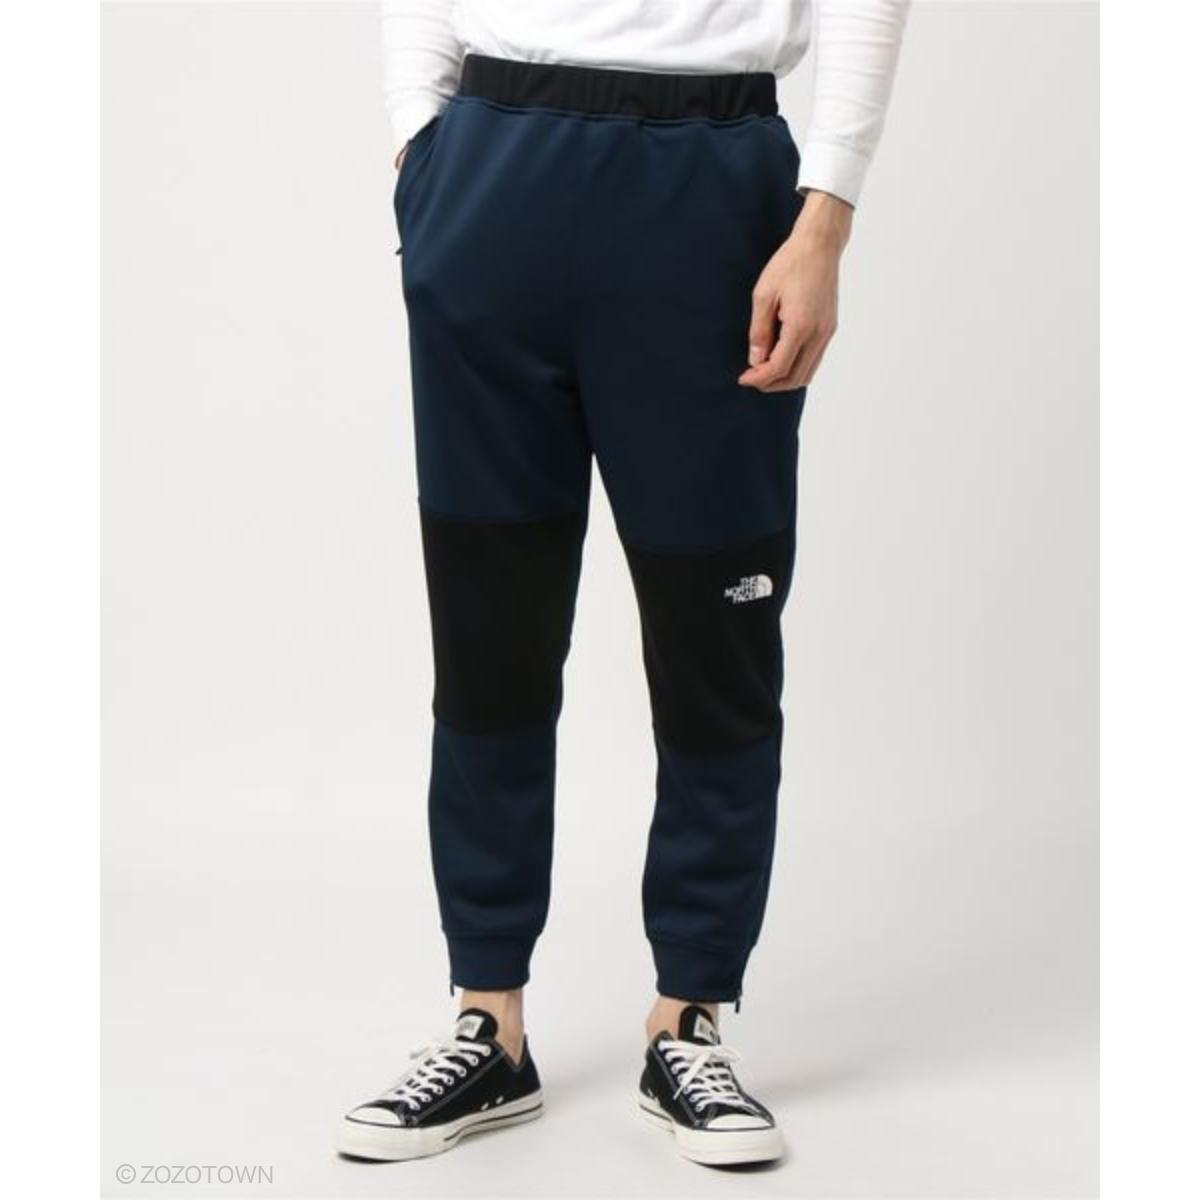 【THE NORTH FACE】 THE NORTH FACE JERSEY PANT